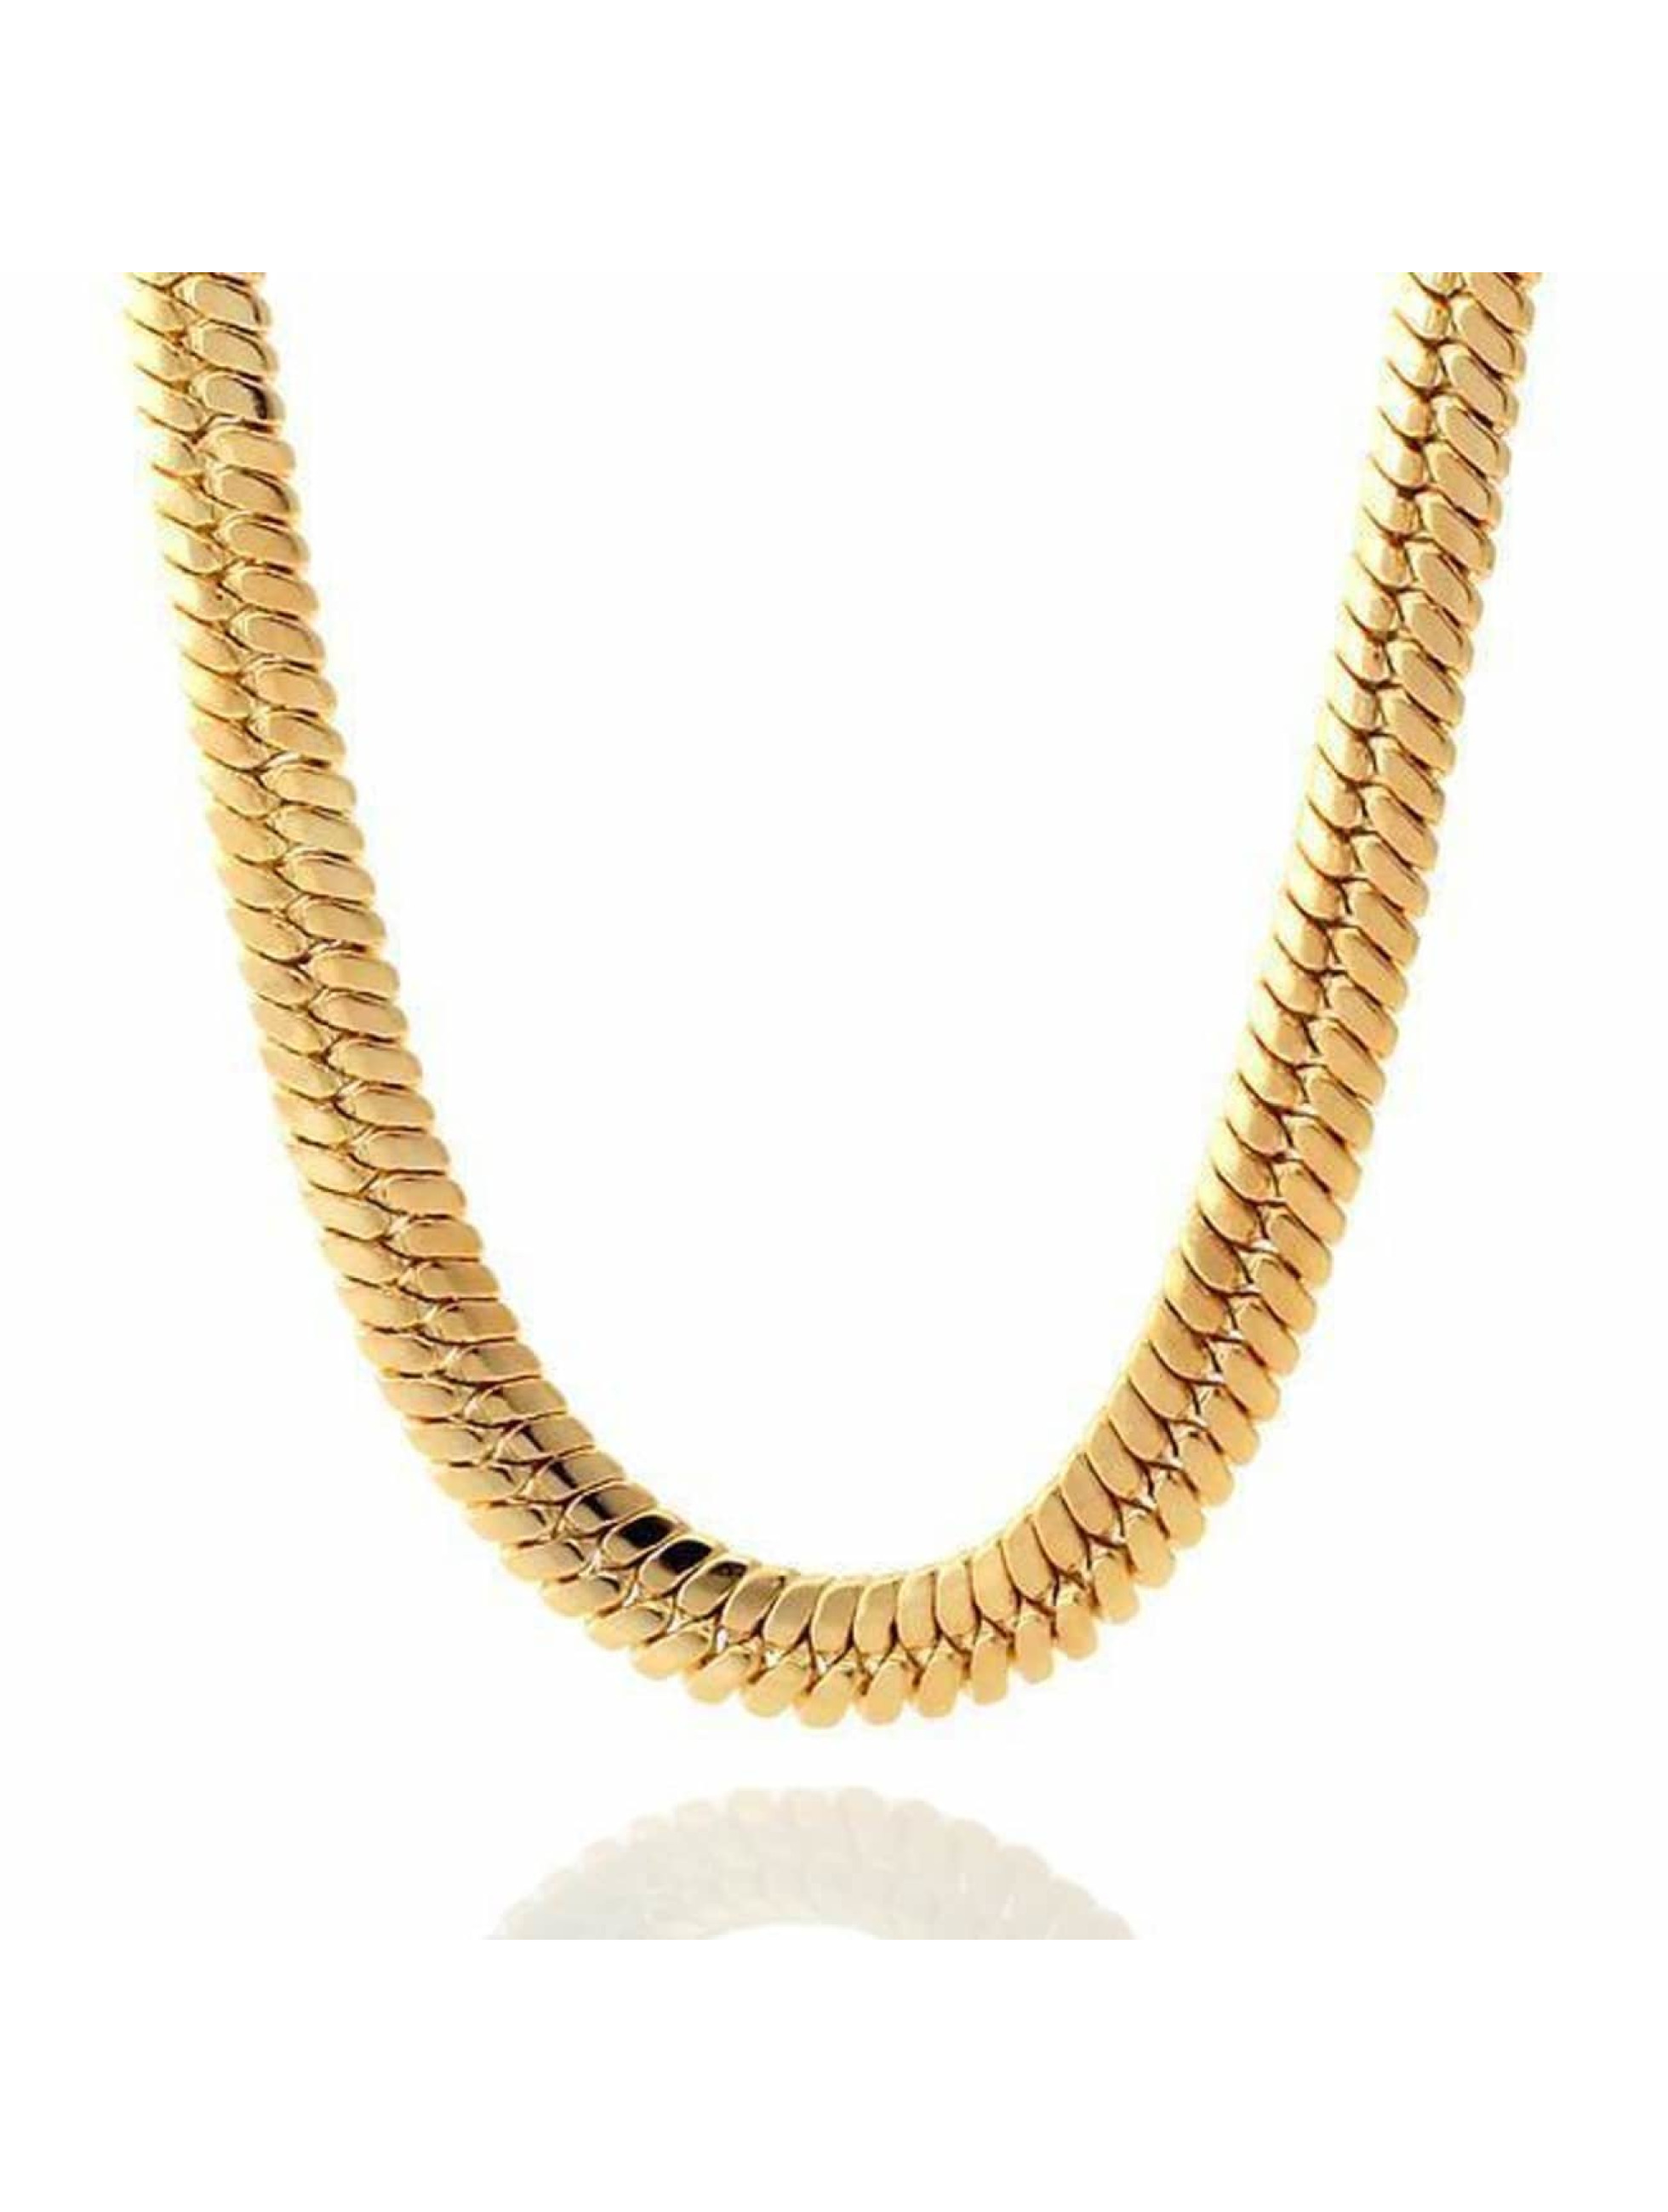 KING ICE Łańcuchy Gold_Plated 10mm Thick Herringbone zloty